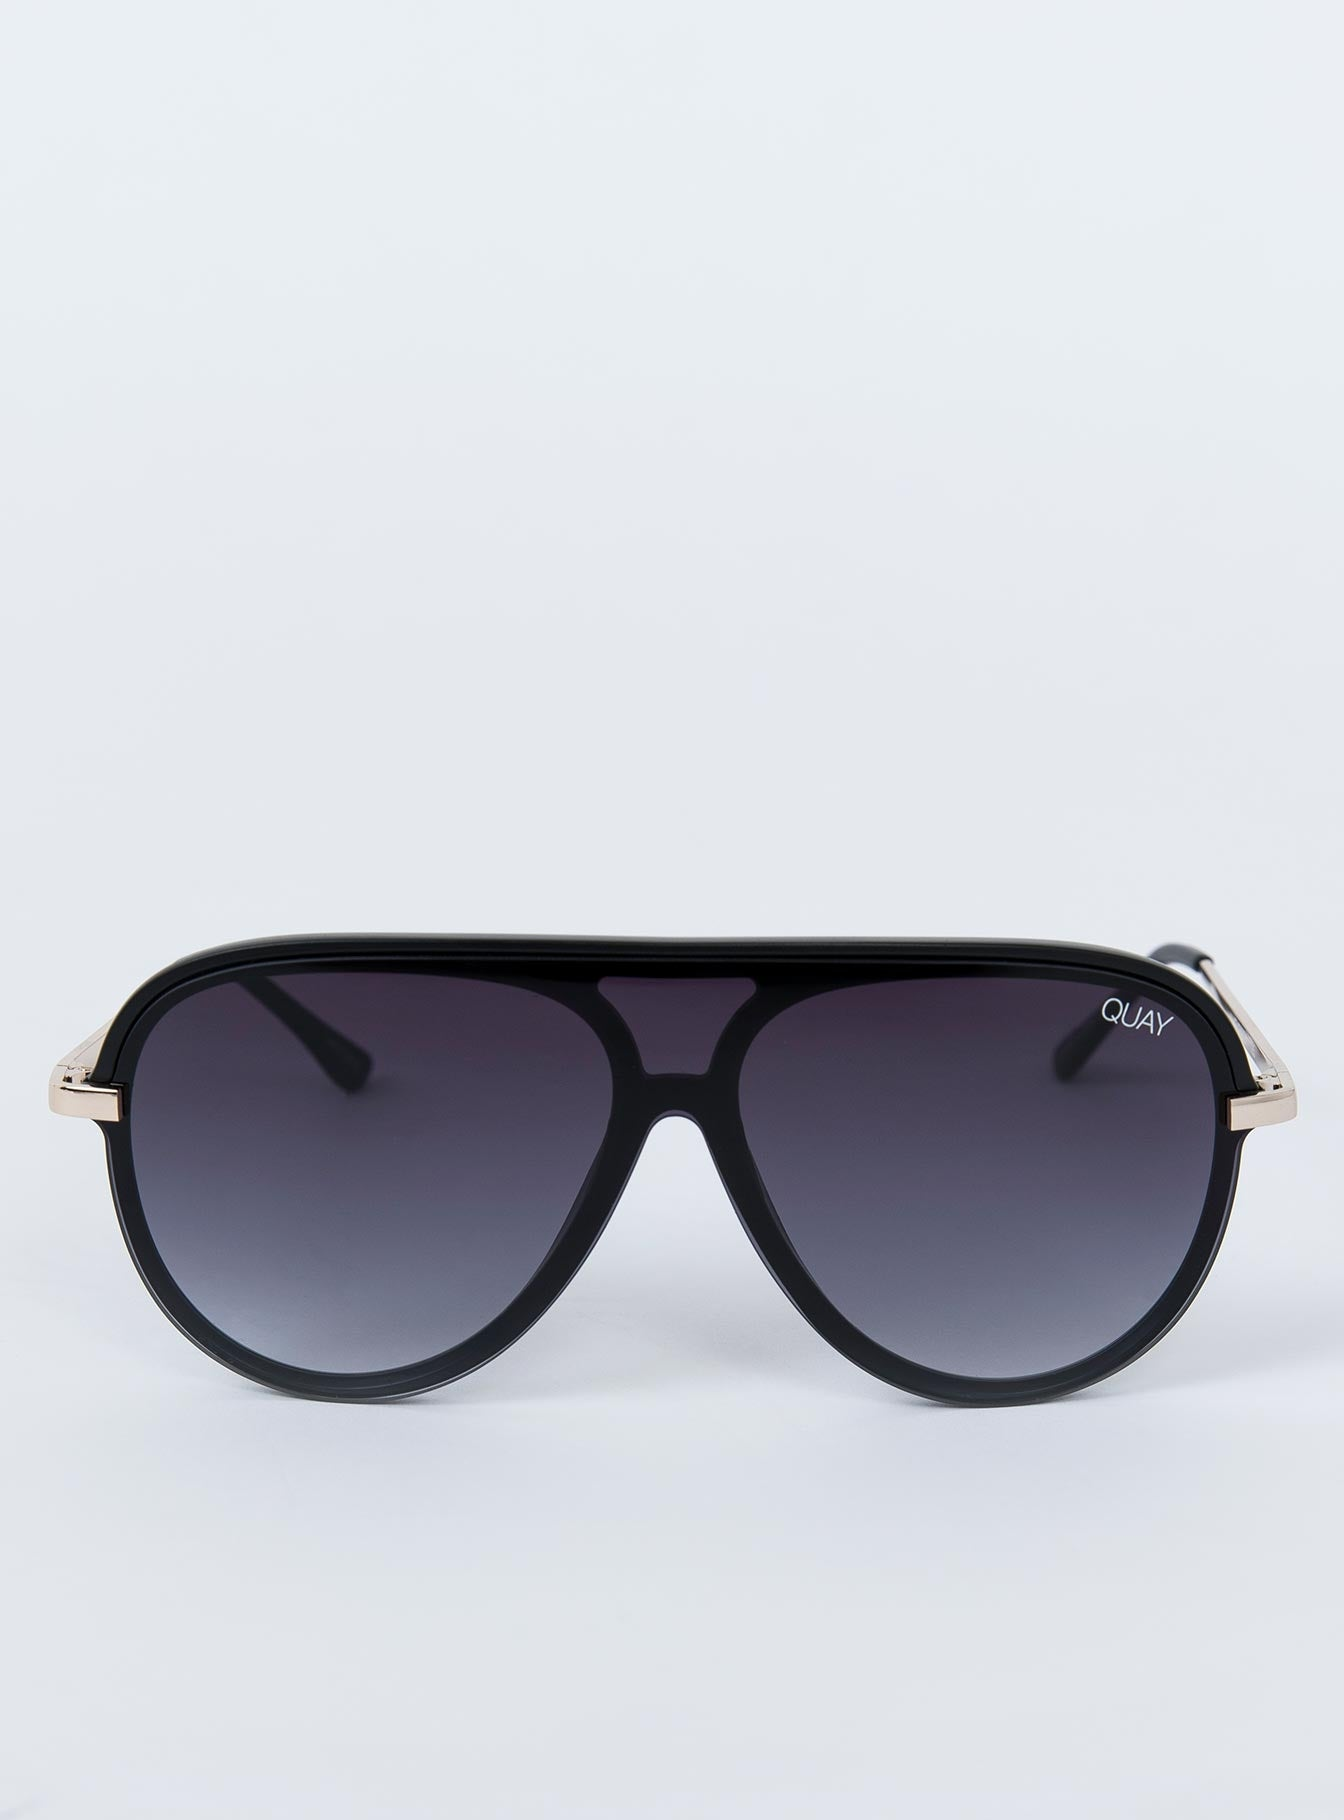 QUAY Empire Sunglasses Black Smoke